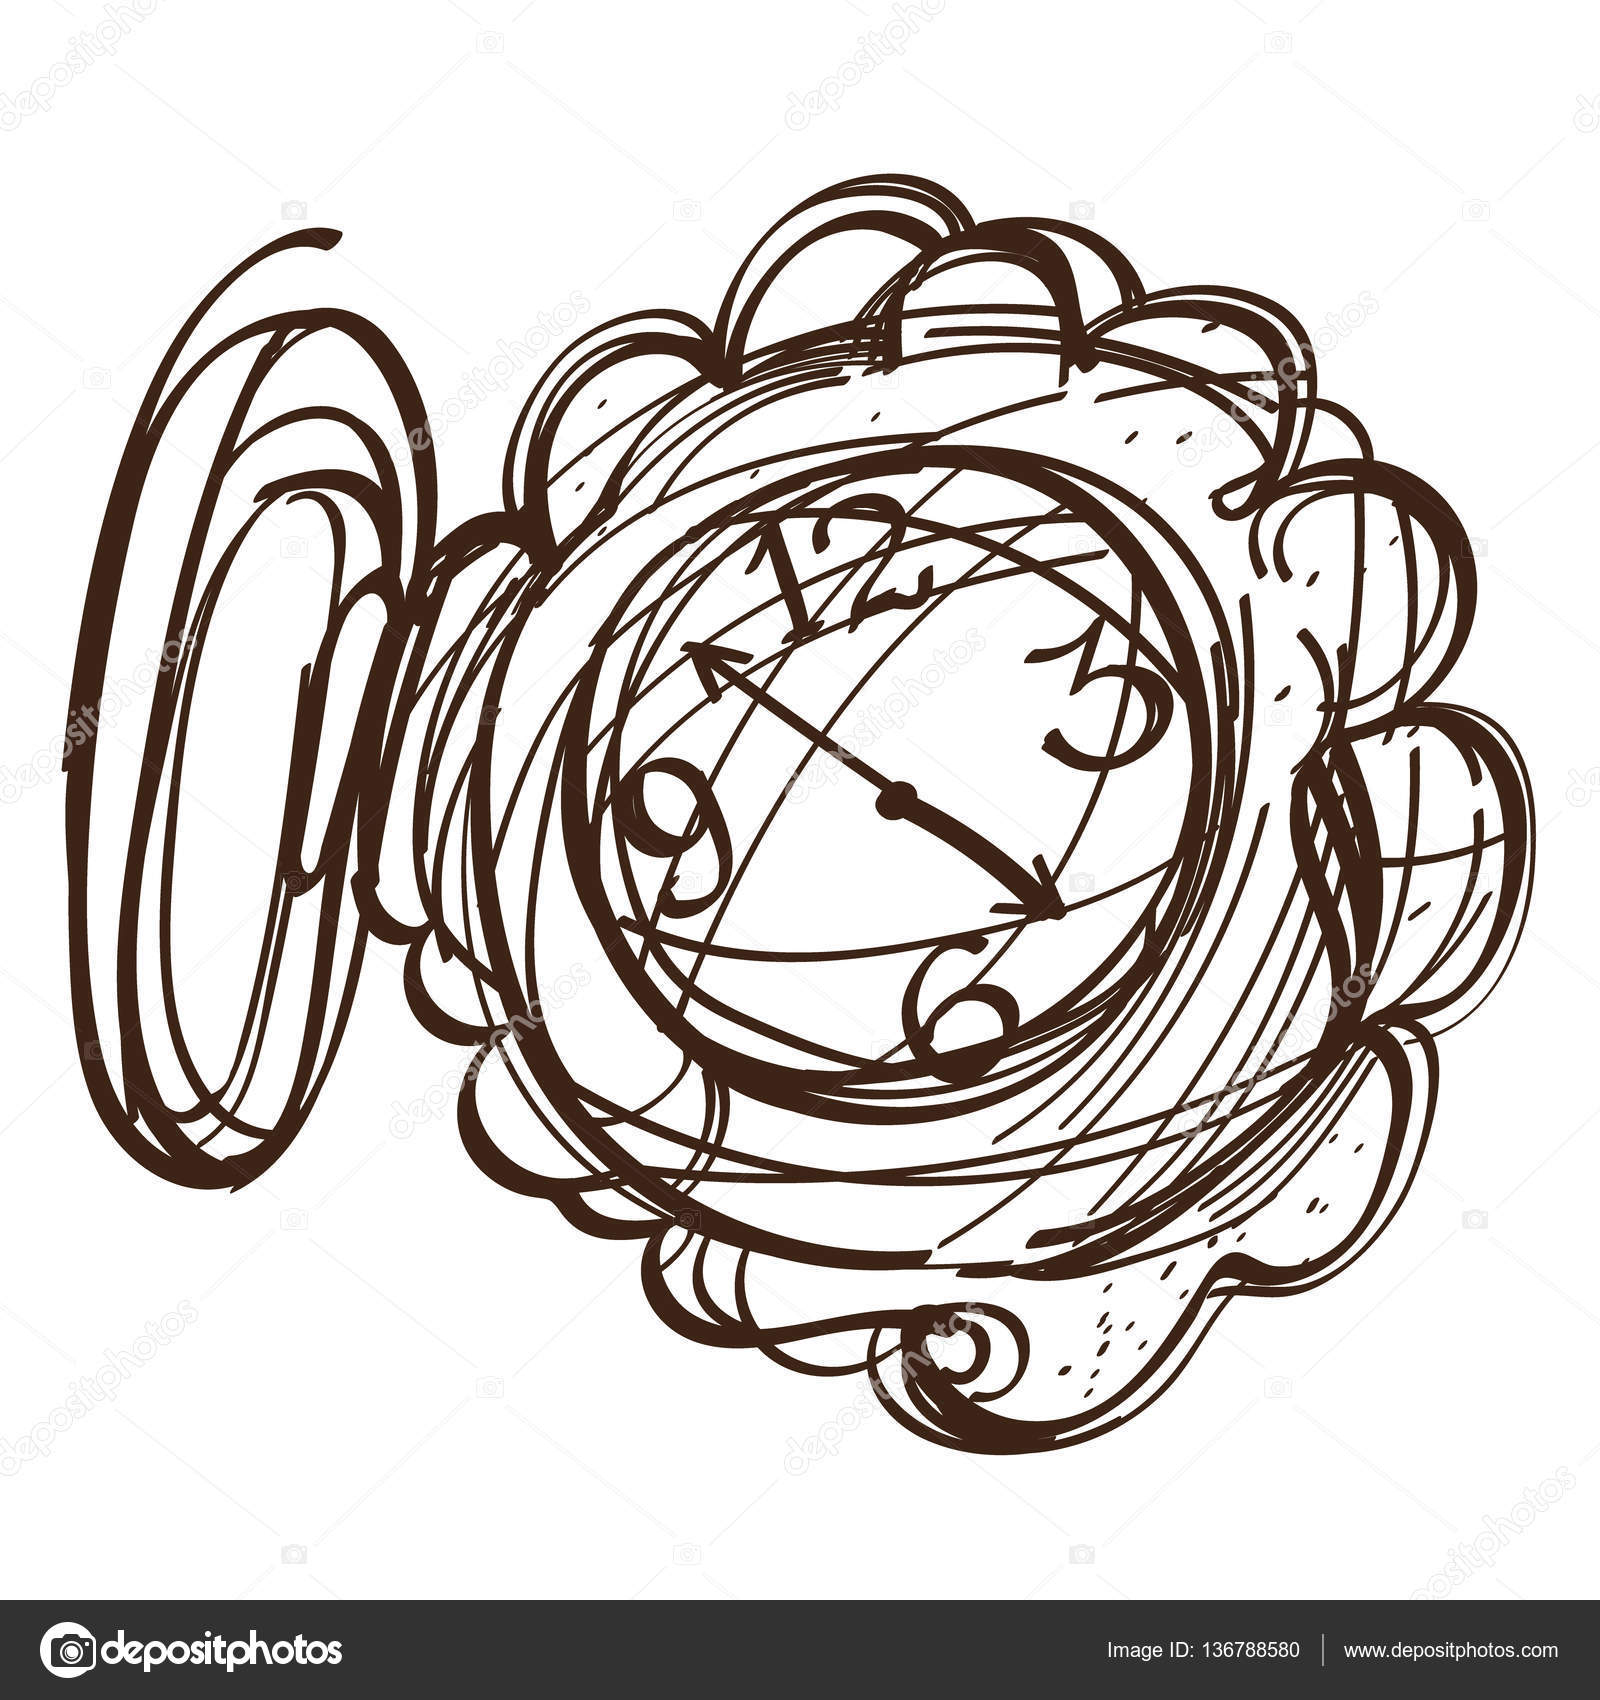 Fairy Pocket Watch Black And White Outline Of A Sketch Illustration